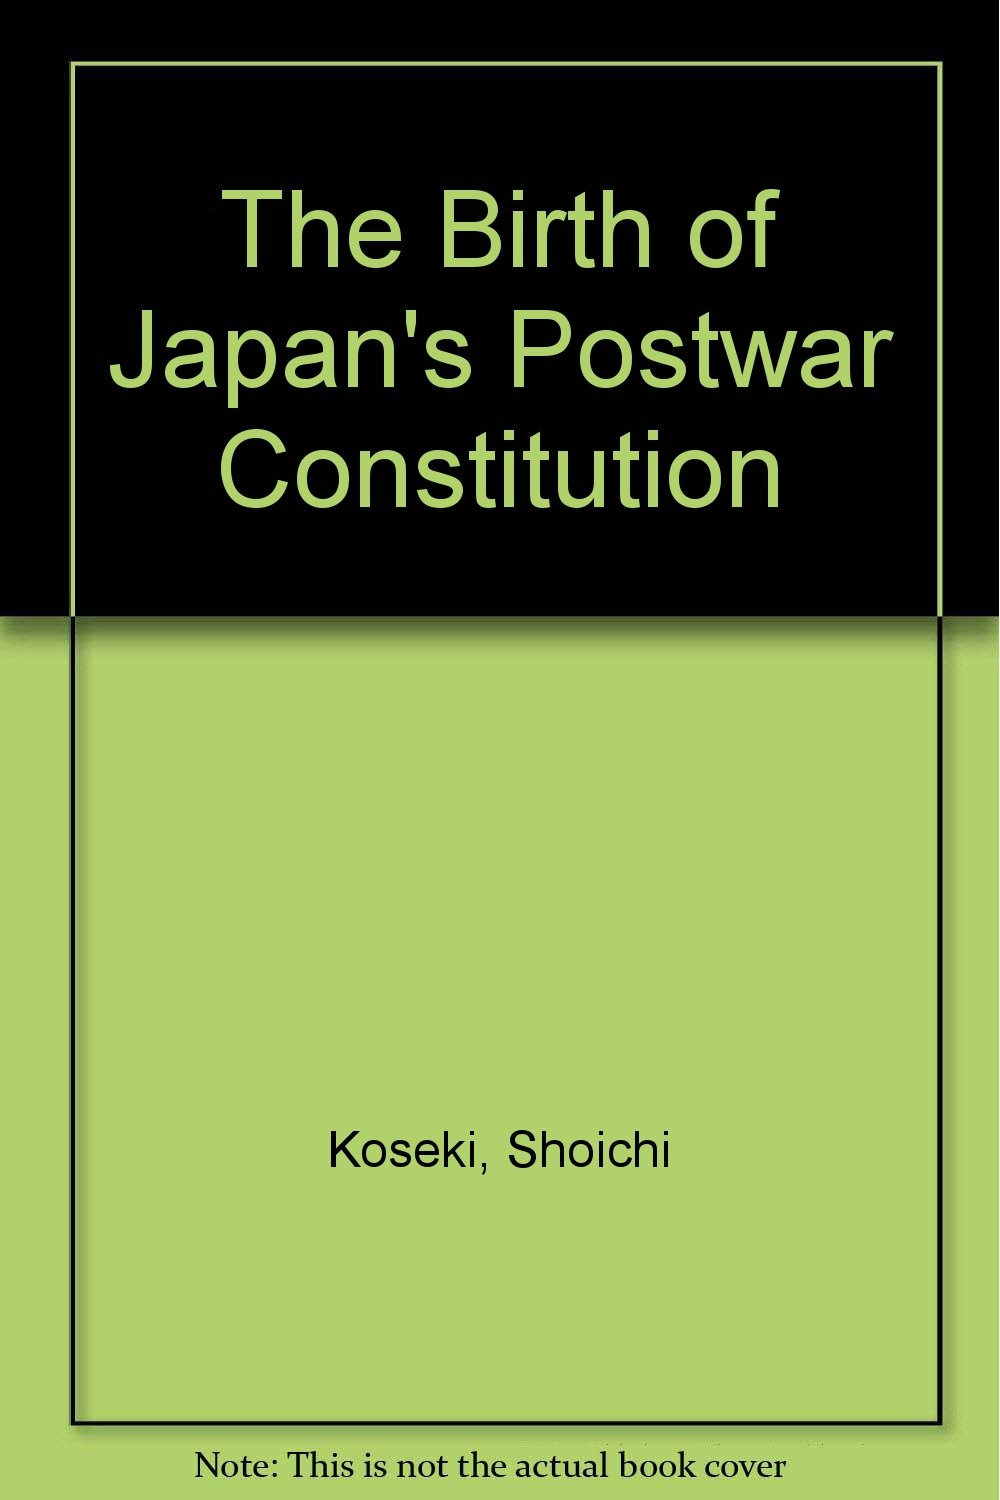 The Birth Of Japan's Postwar Constitution, Koseki Shoichi